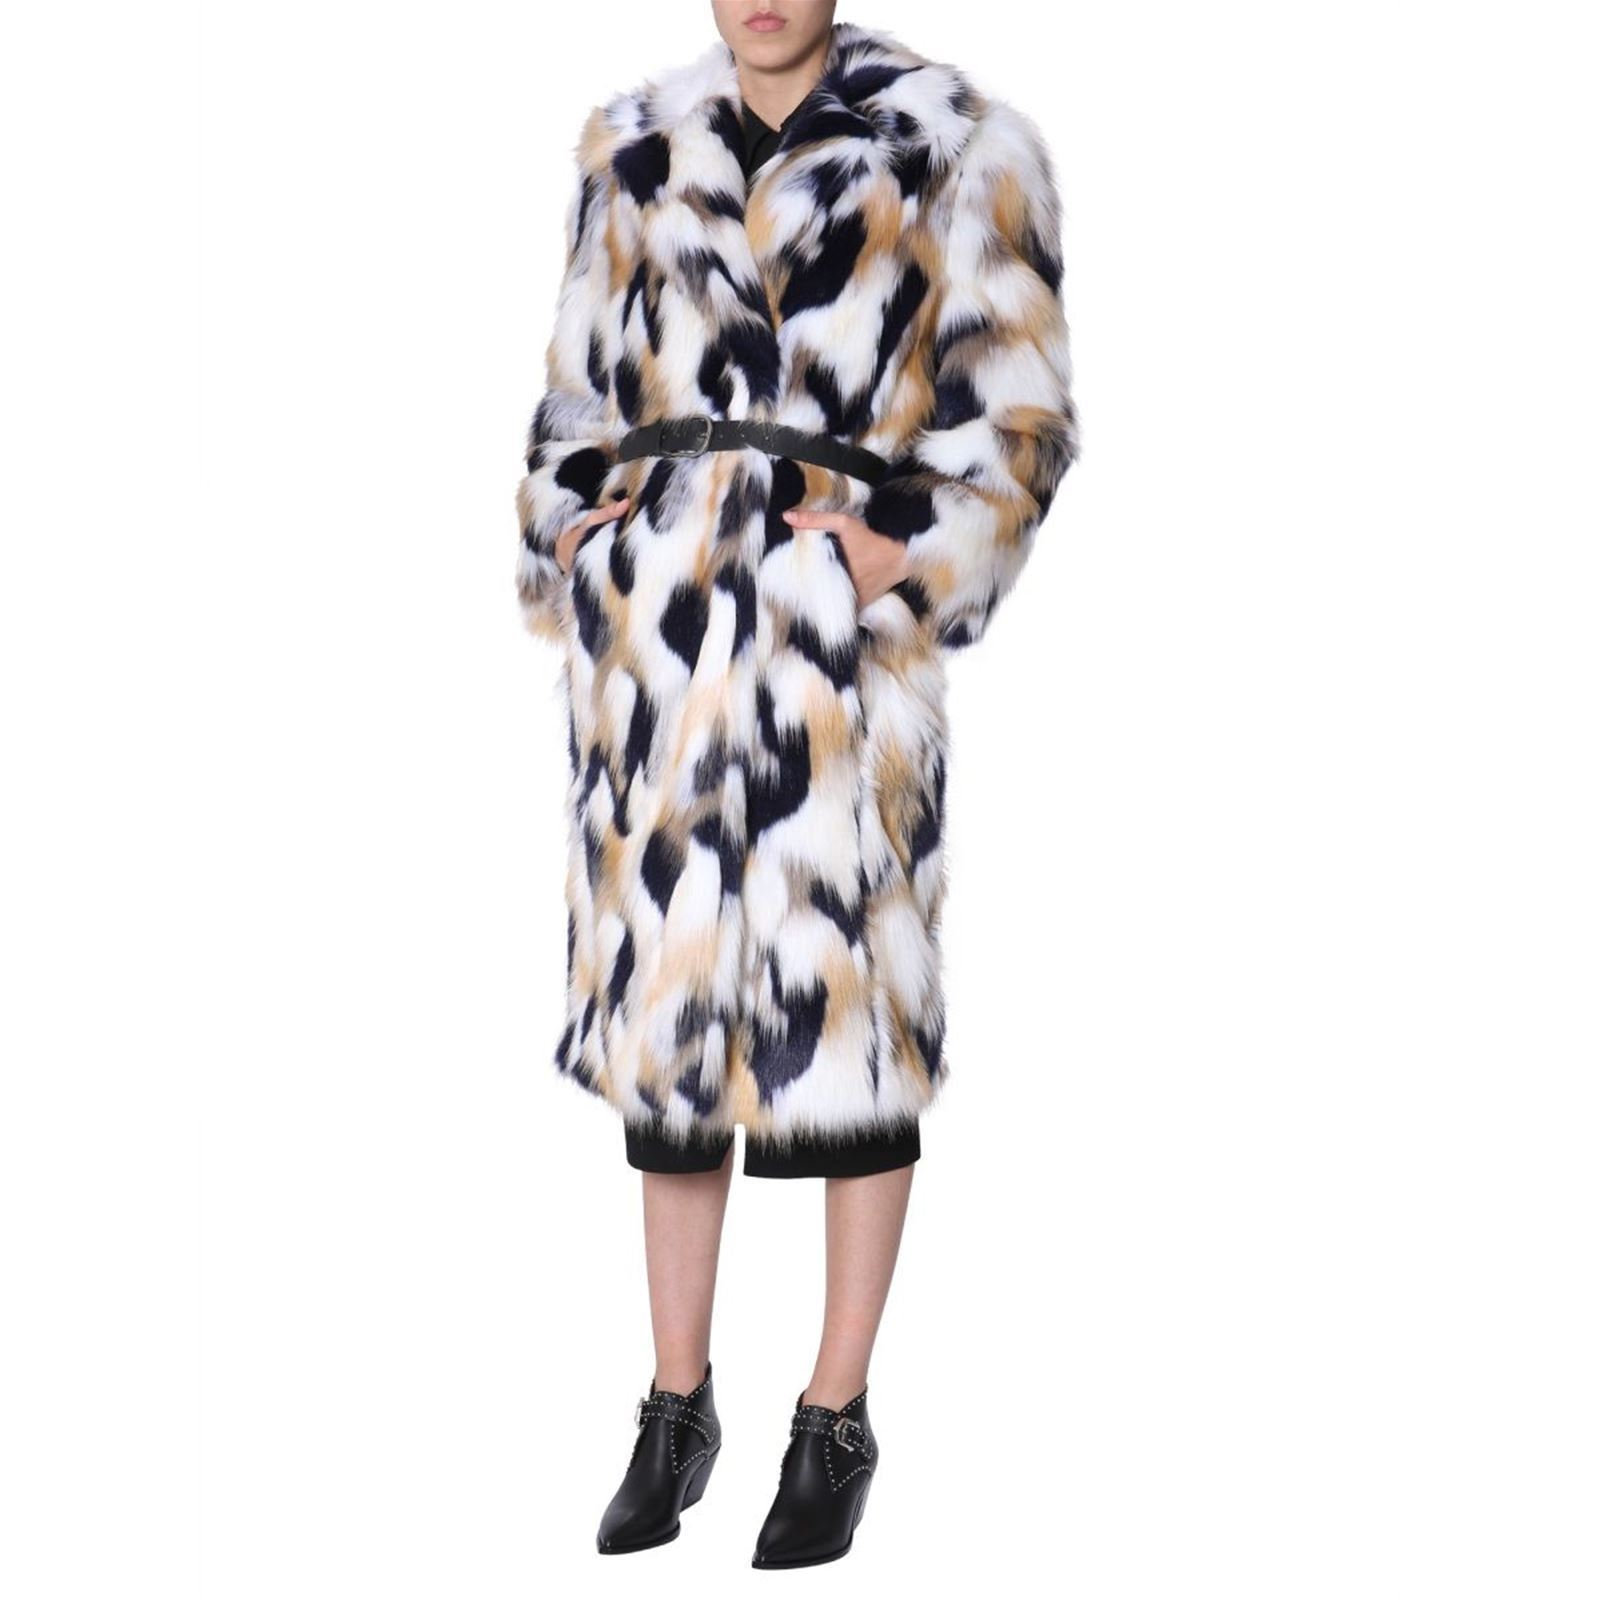 Givenchy V Givenchy ManteauMulticolore Femme ManteauMulticolore V Femme rBdCxoWe